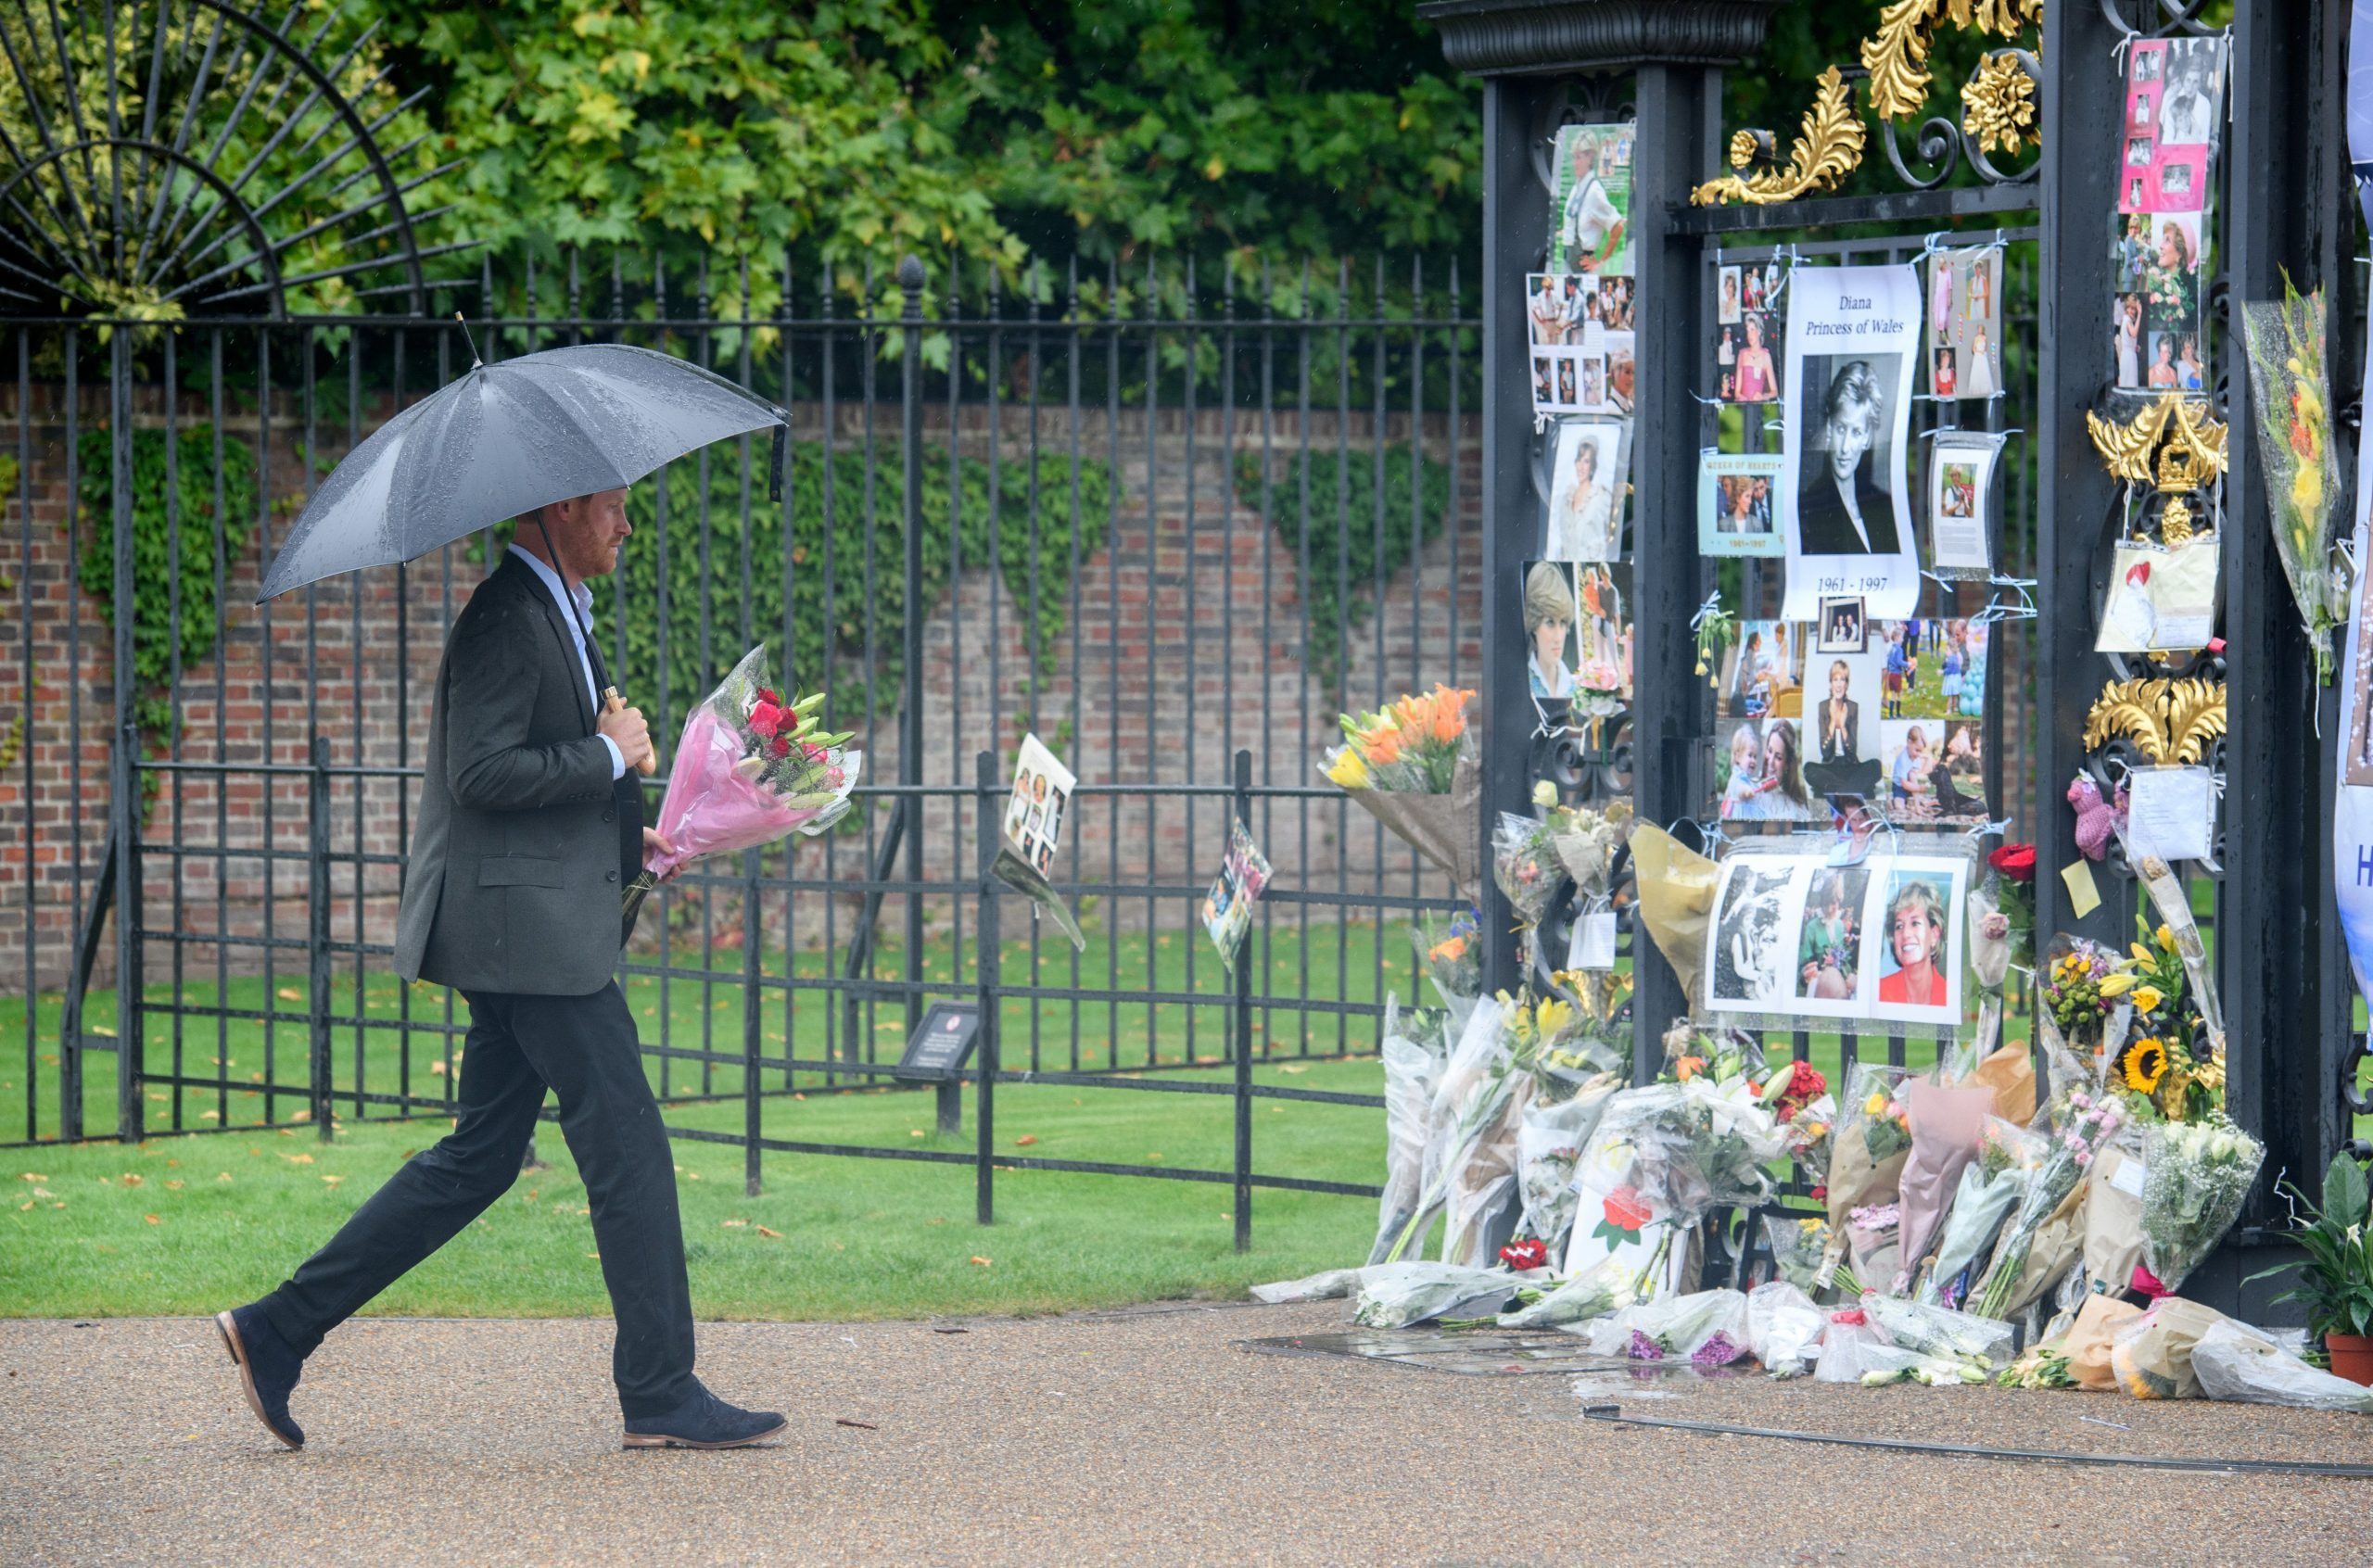 Prince William and Prince Harry leave tribute to Princess Diana at the gates of Kensington Palace, London, UK - 30 Aug 2017